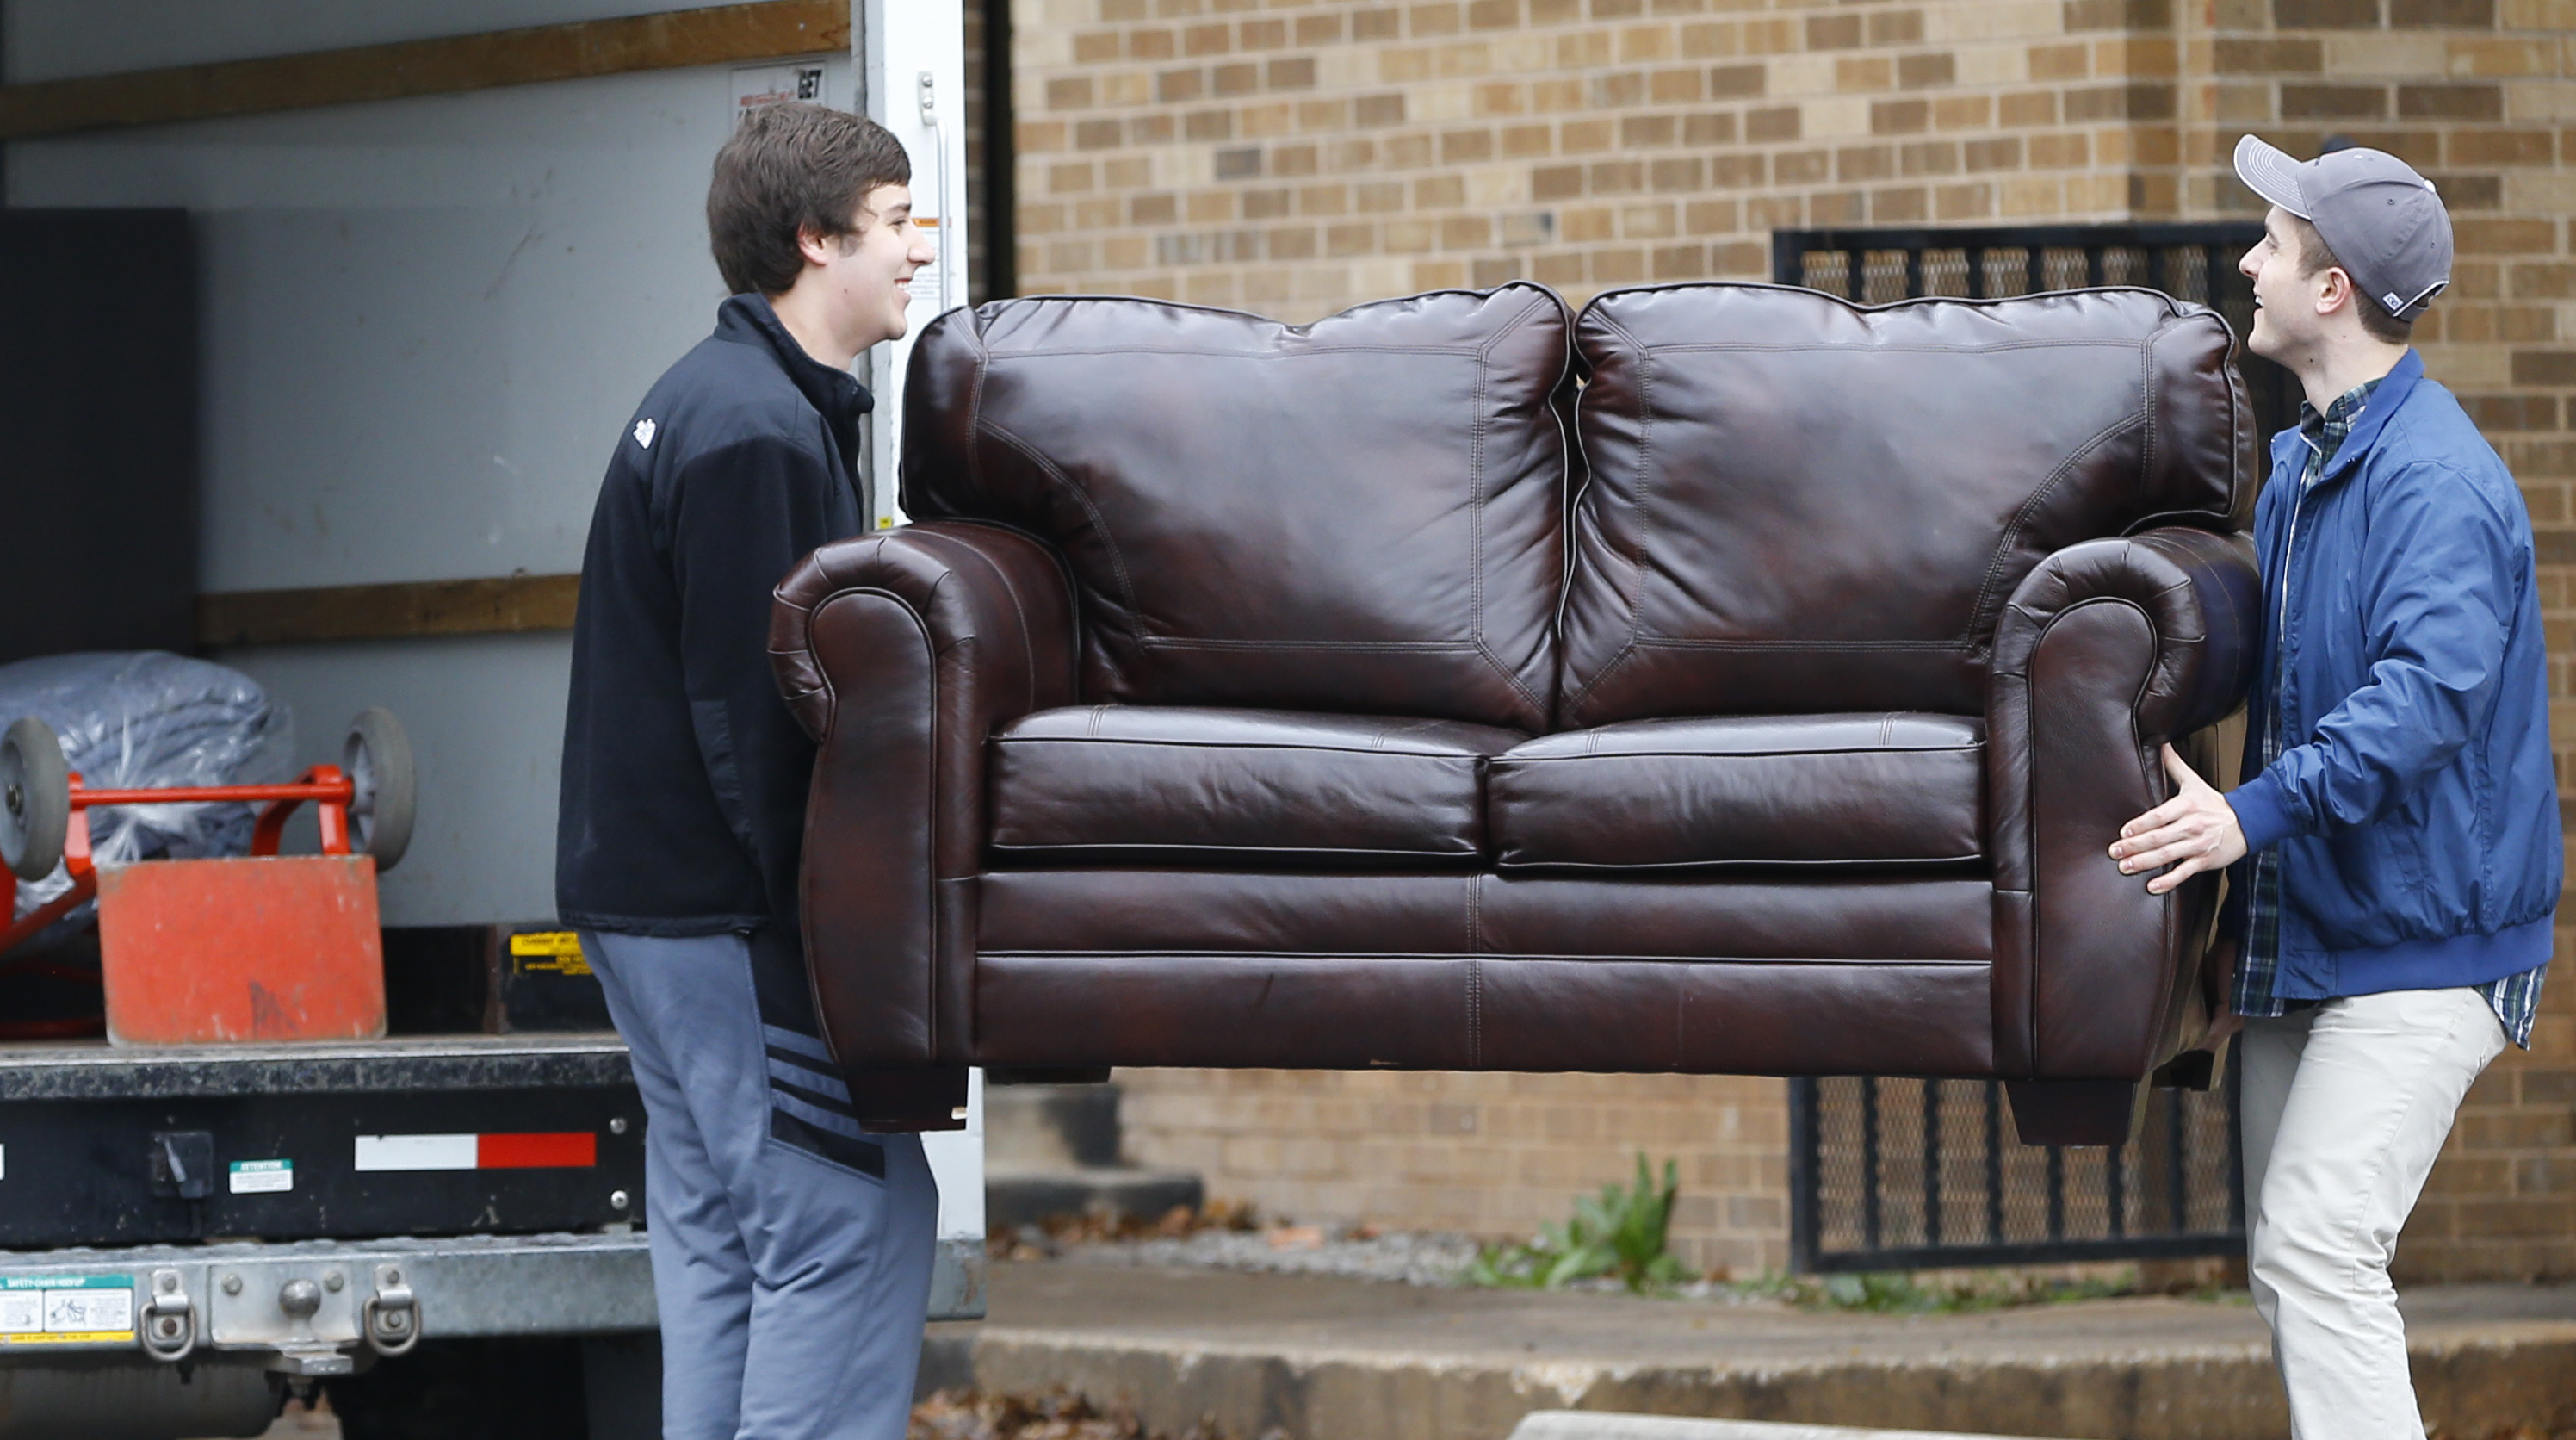 File-This March 10, 2015, file photo shows two men loading a couch from the now closed University of Oklahoma's Sigma Alpha Epsilon fraternity house into a moving truck, in Norman, Okla. Fraternities dominate social life at many American universities, but lately these organizations of male college students have been receiving unwanted attention for their bad behavior. At the University of Oklahoma, one prominent fraternity was shut down after members were caught on video performing a racist chant.